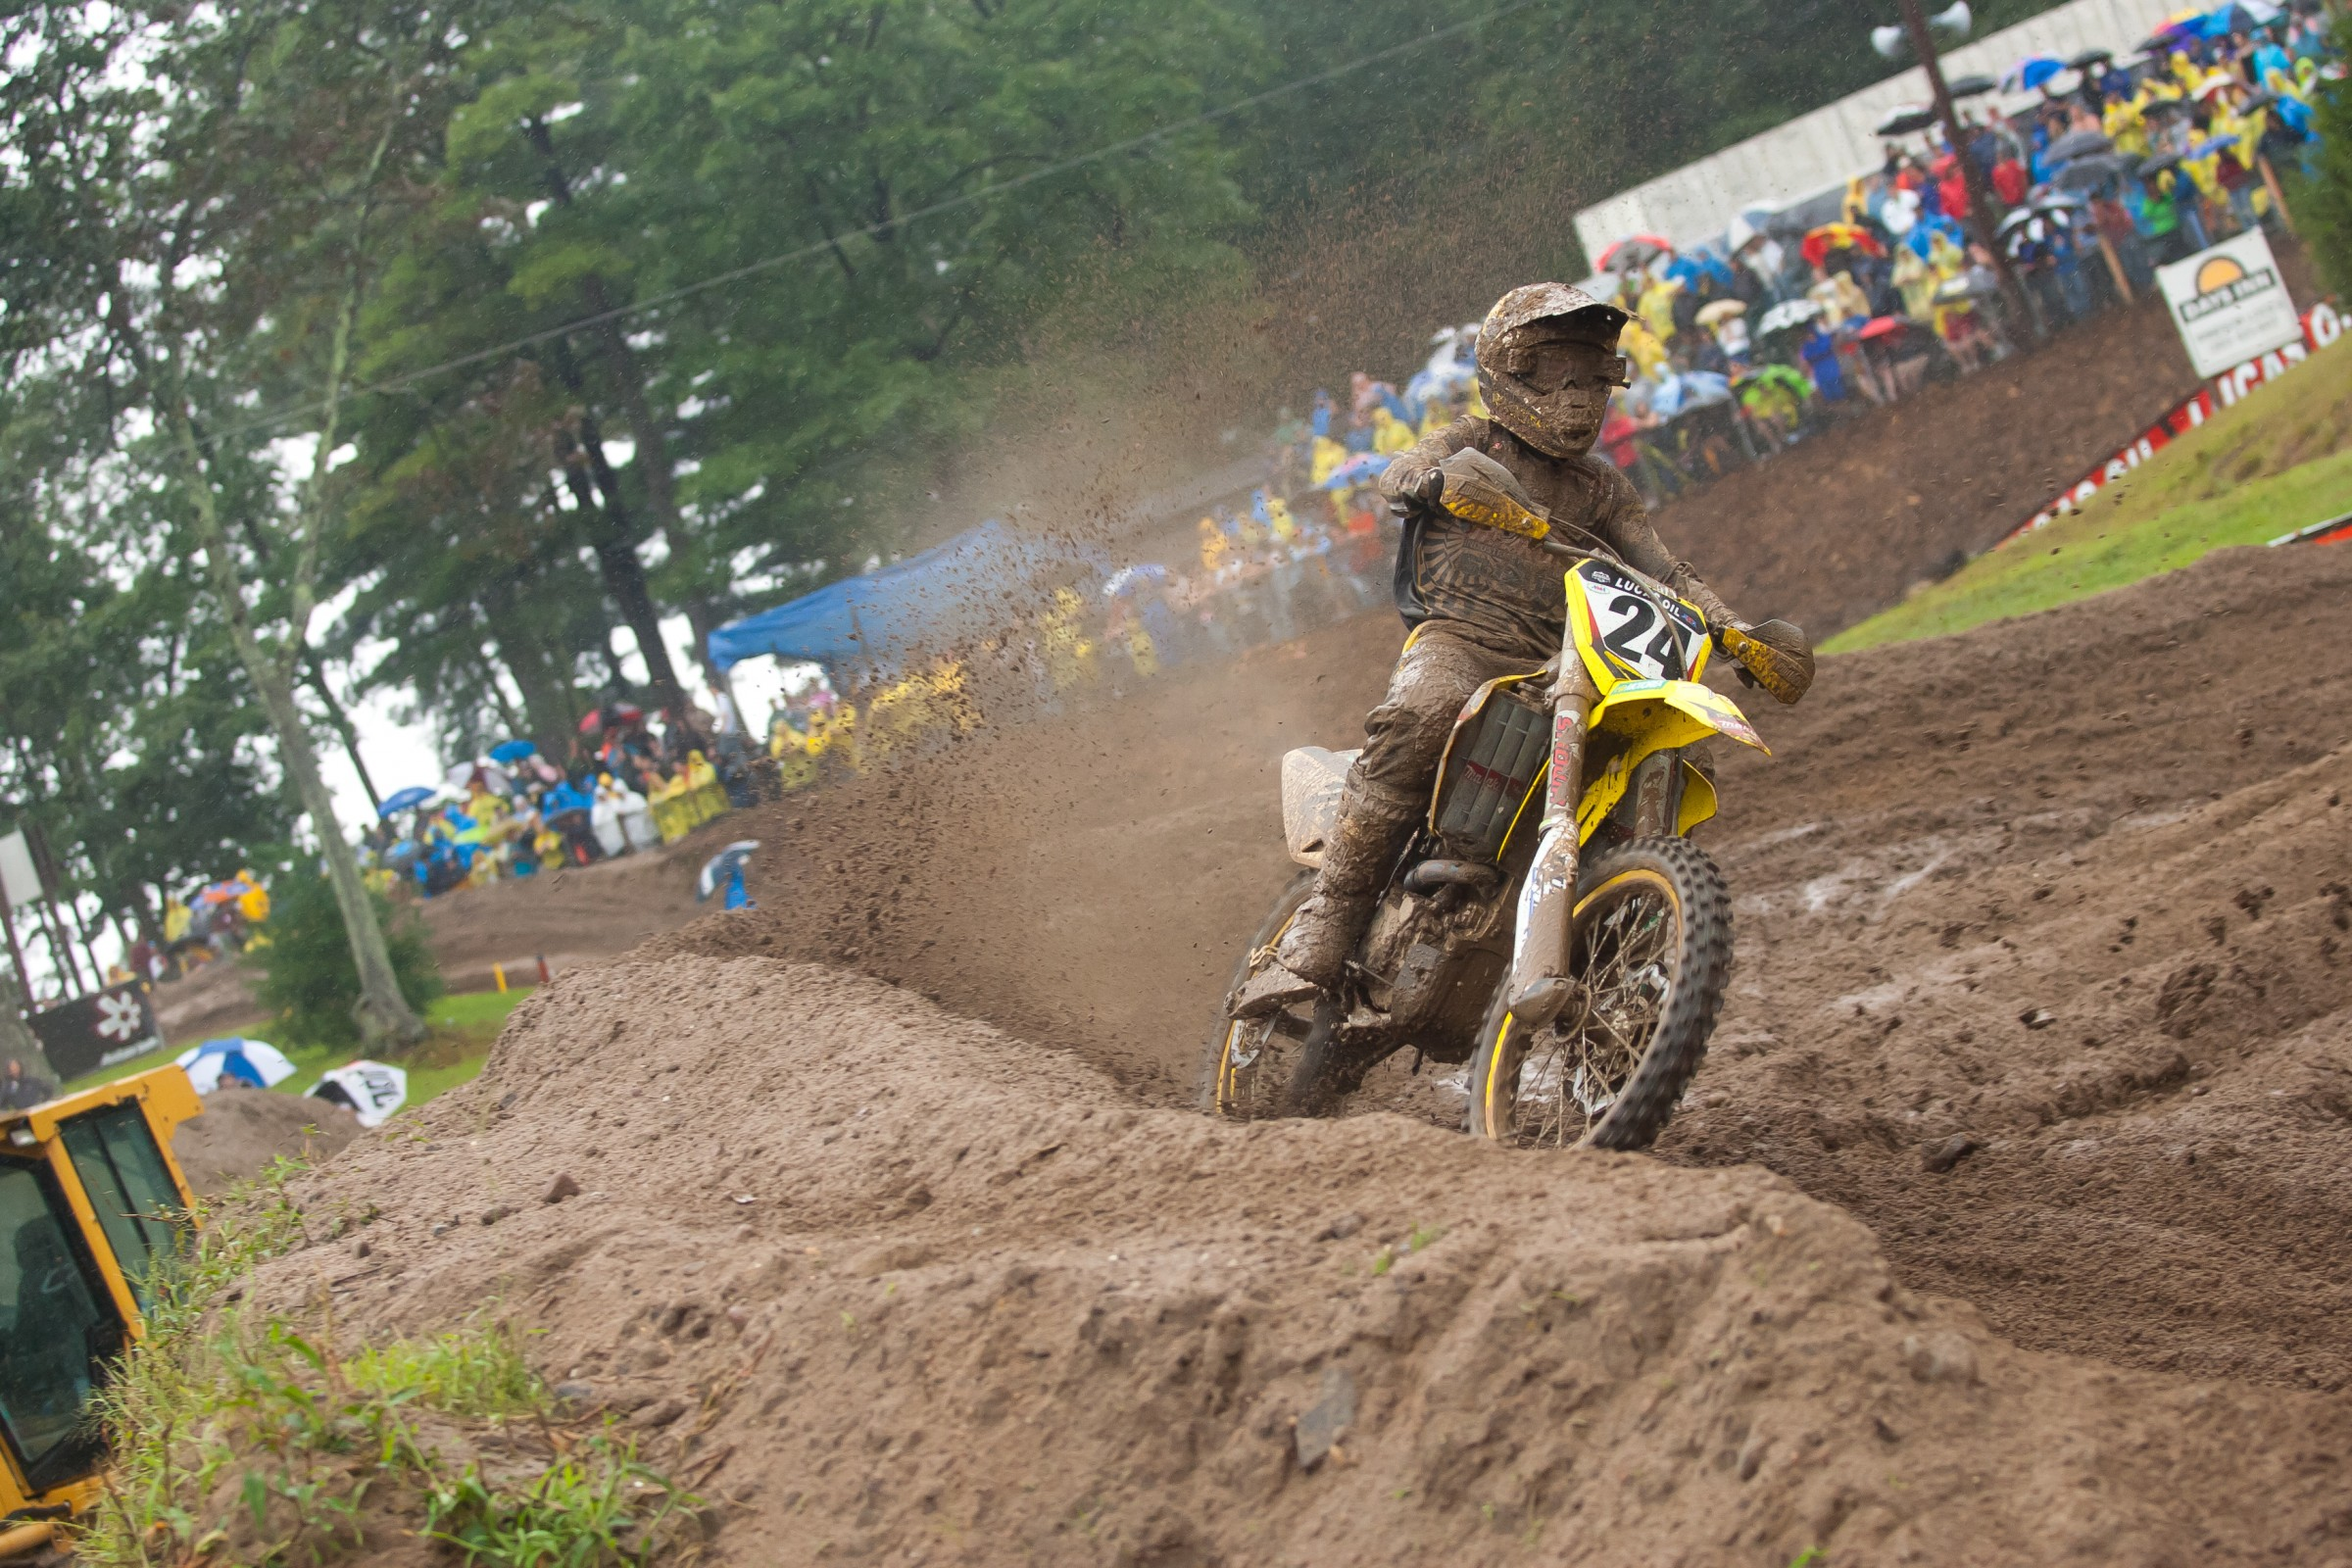 Metcalfe won his first and only overall with 3-2 moto scores.